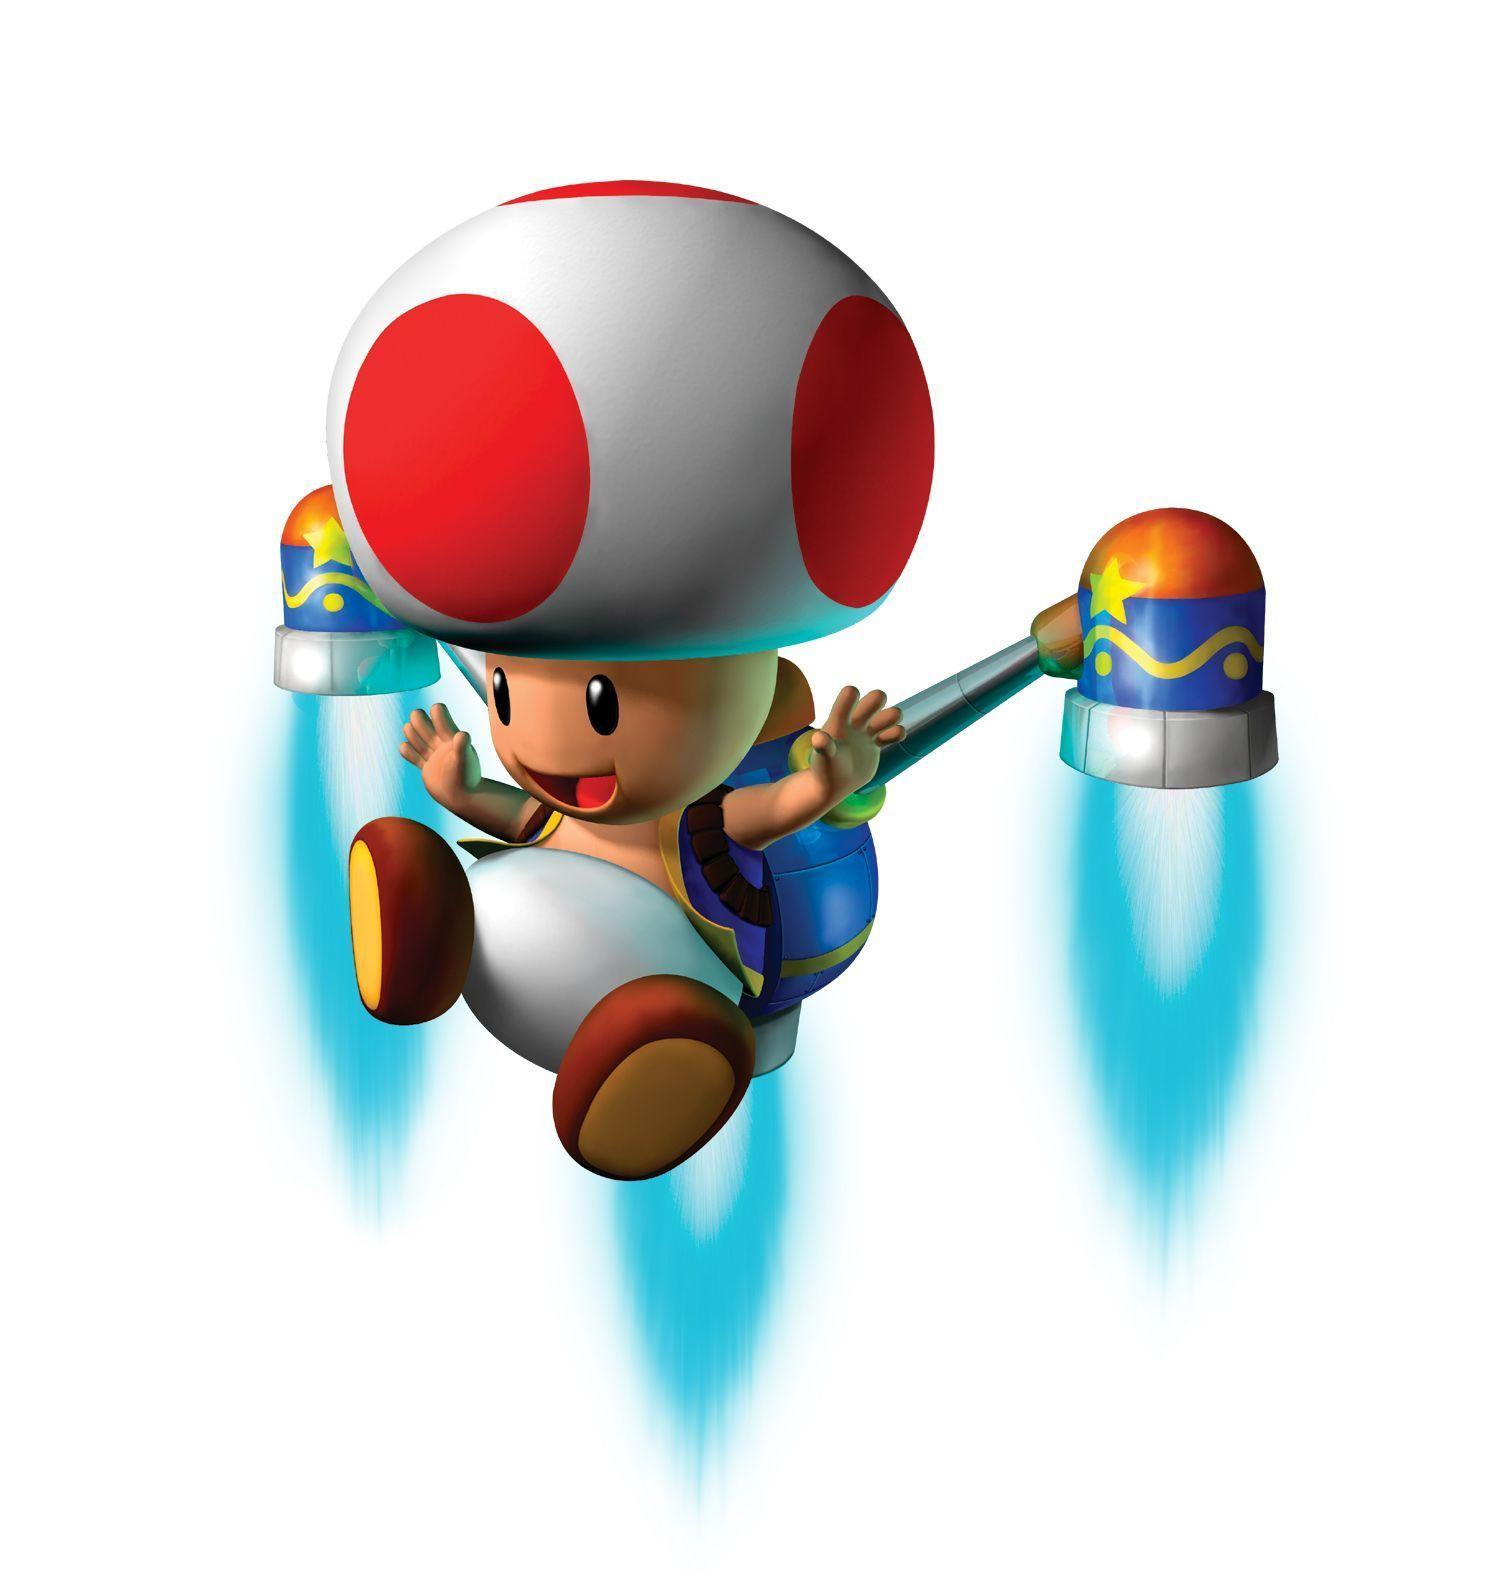 Image For > Mario Toadstool